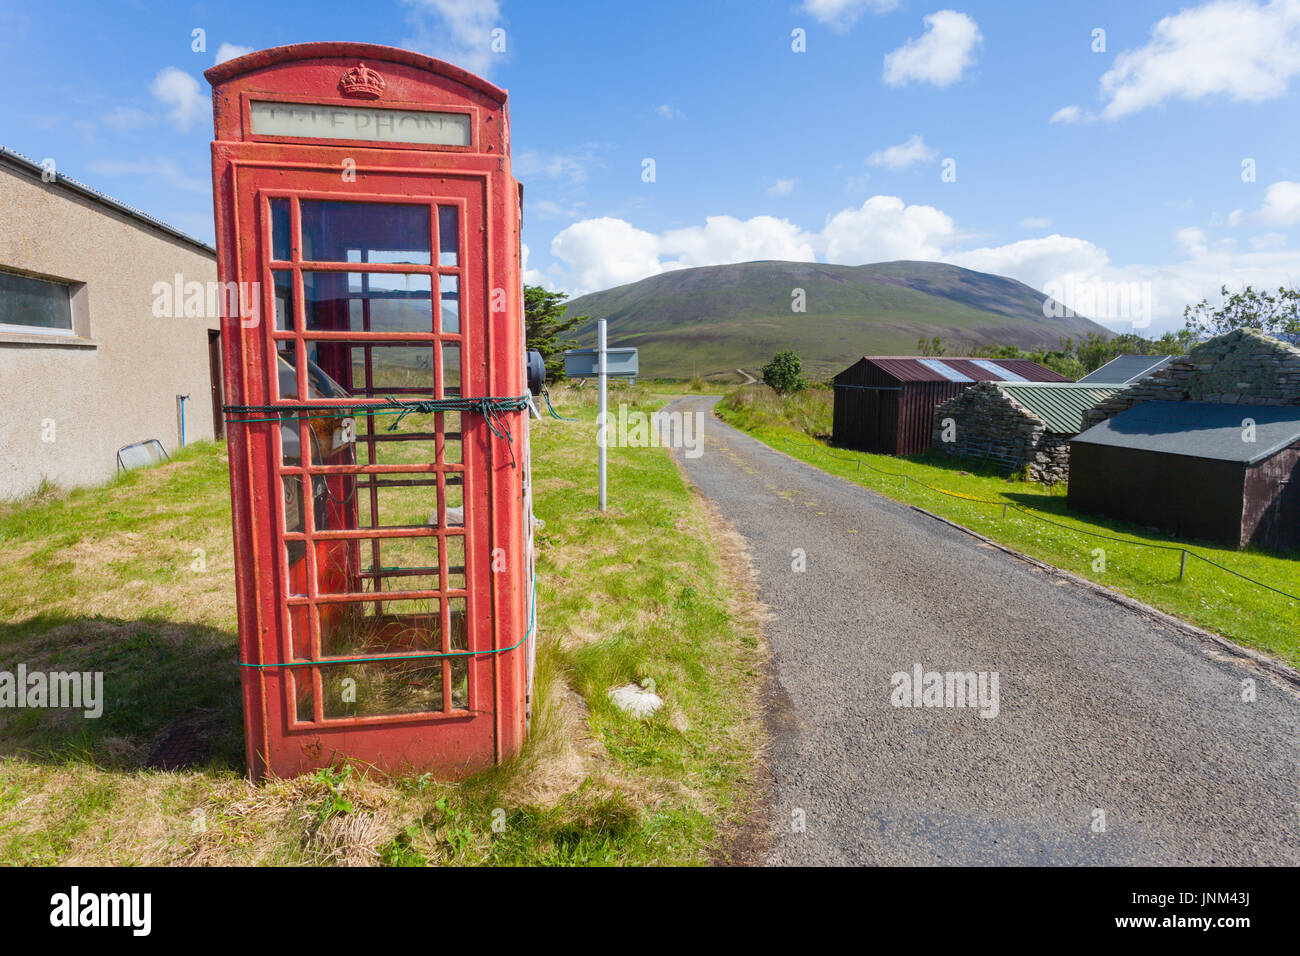 Old disused traditional British red phone box kiosk, Hoy, Orkney UK - Stock Image